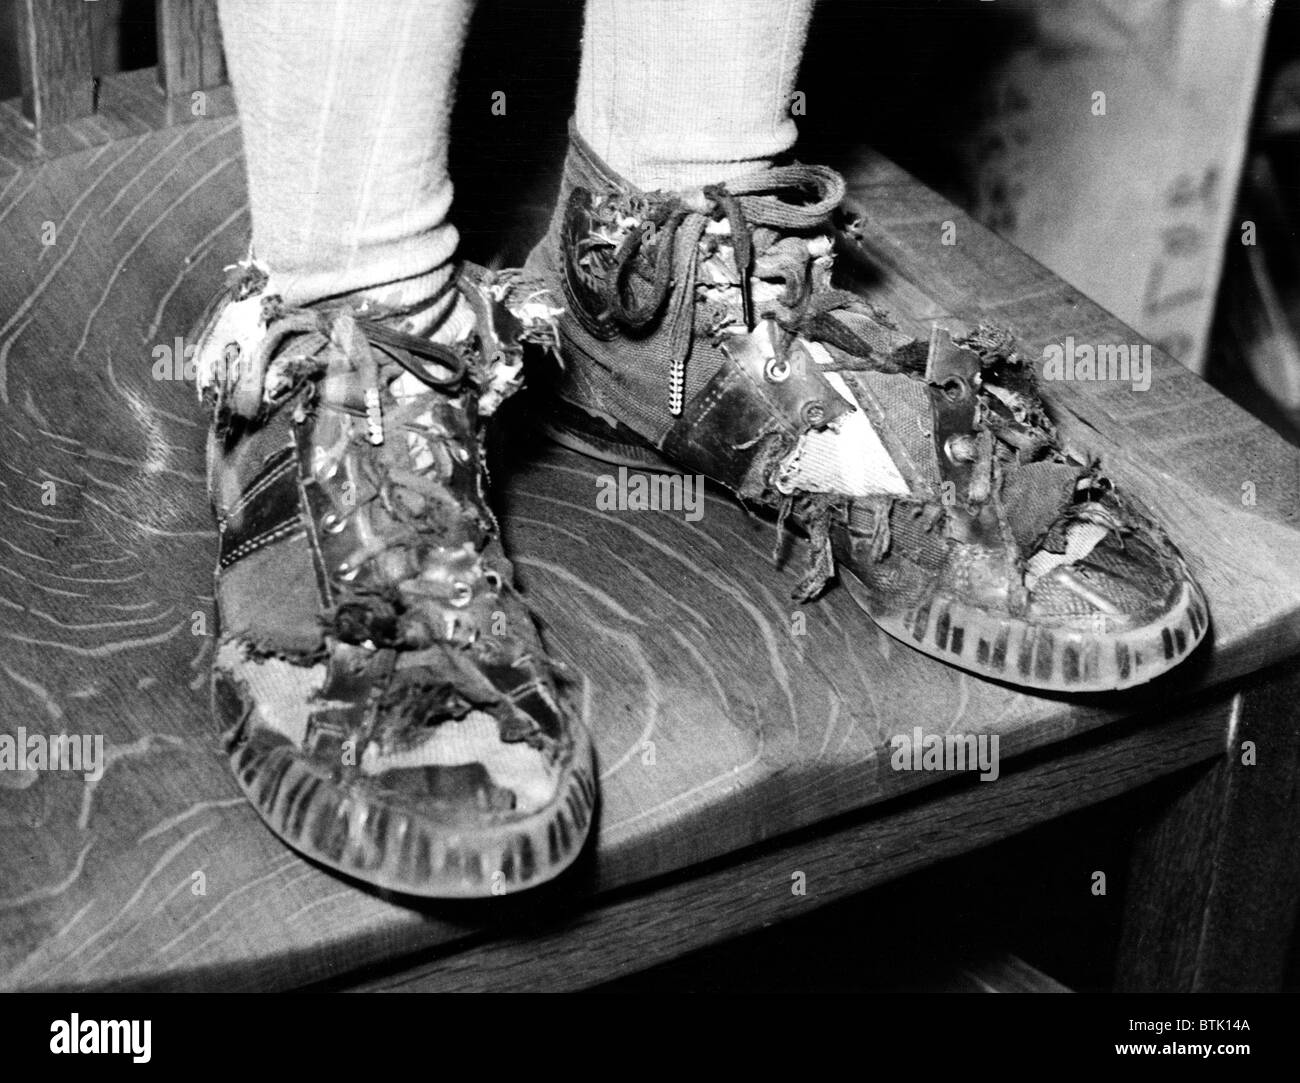 Sneakers, (School publicity shot supporting PTA's replacement of worn shoes), circa 1940-1950's - Stock Image